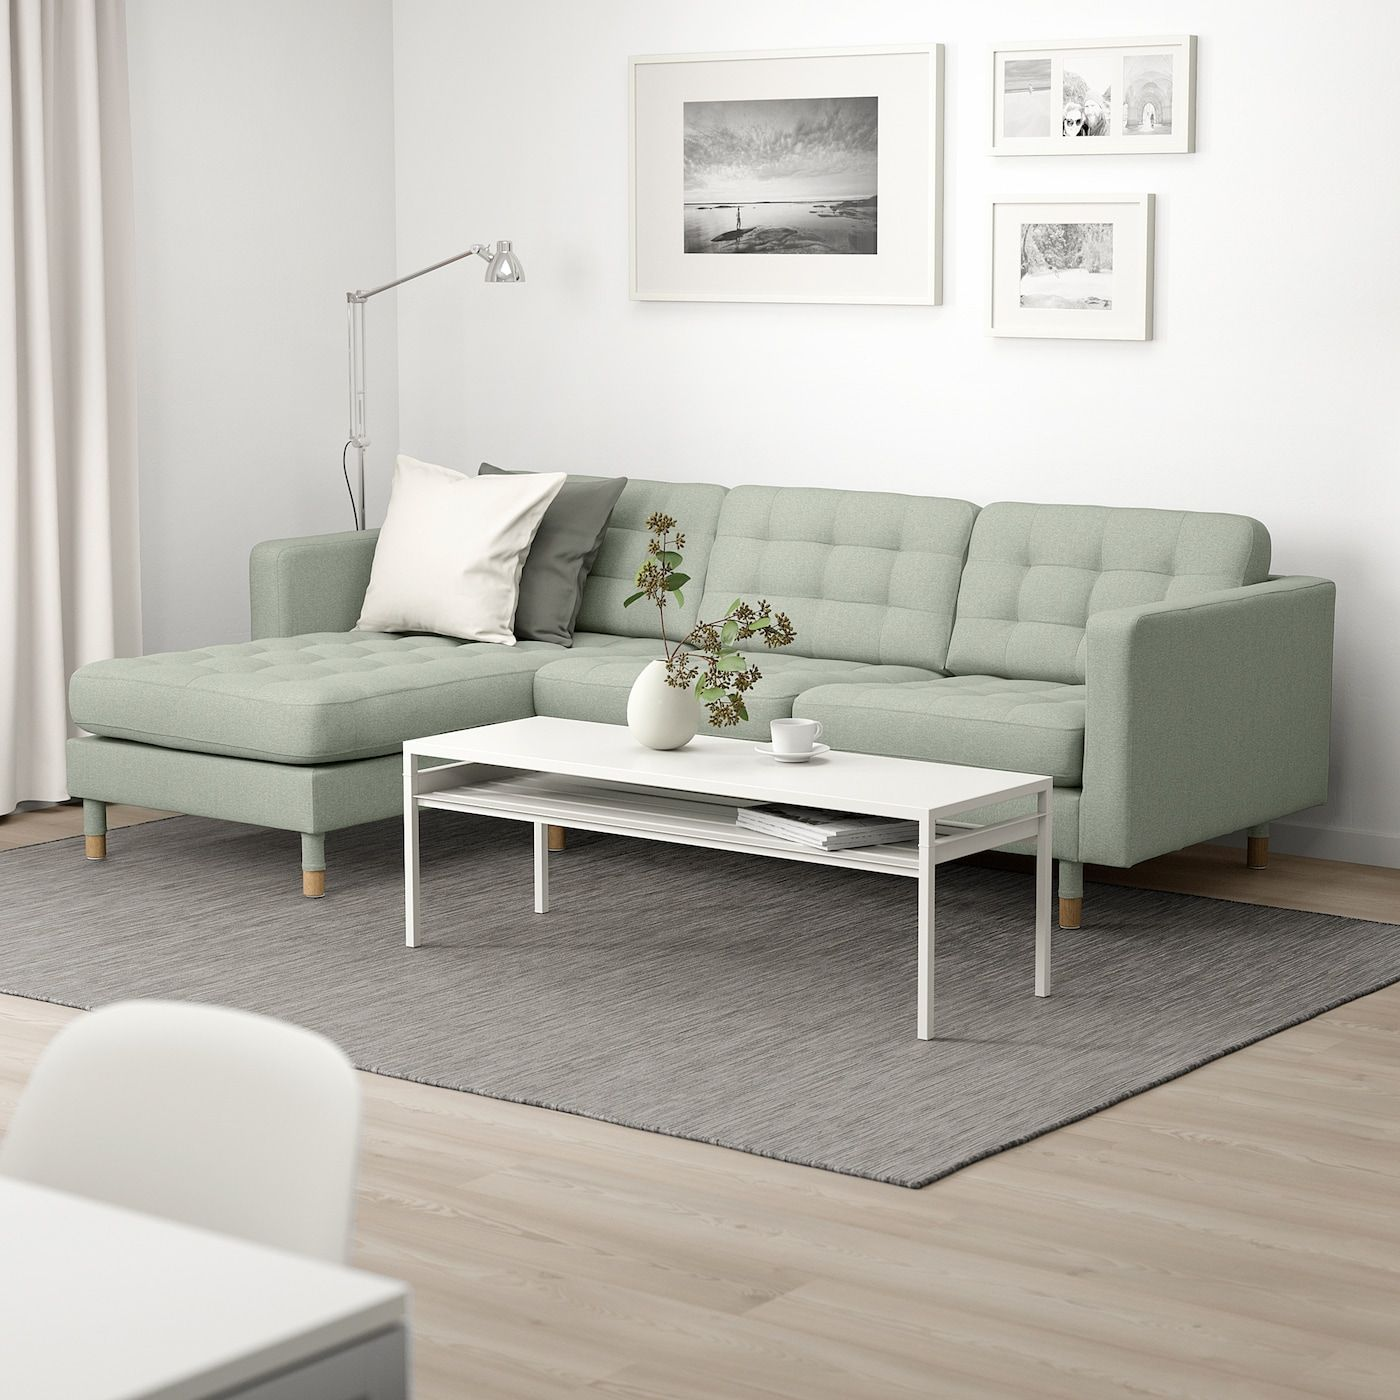 Buy Landskrona 3 Seat Sofa With Chaise Longue Gunnared Light Green Wood Online Ikea In 2020 Brown Living Room Decor Landskrona Sofa Landskrona